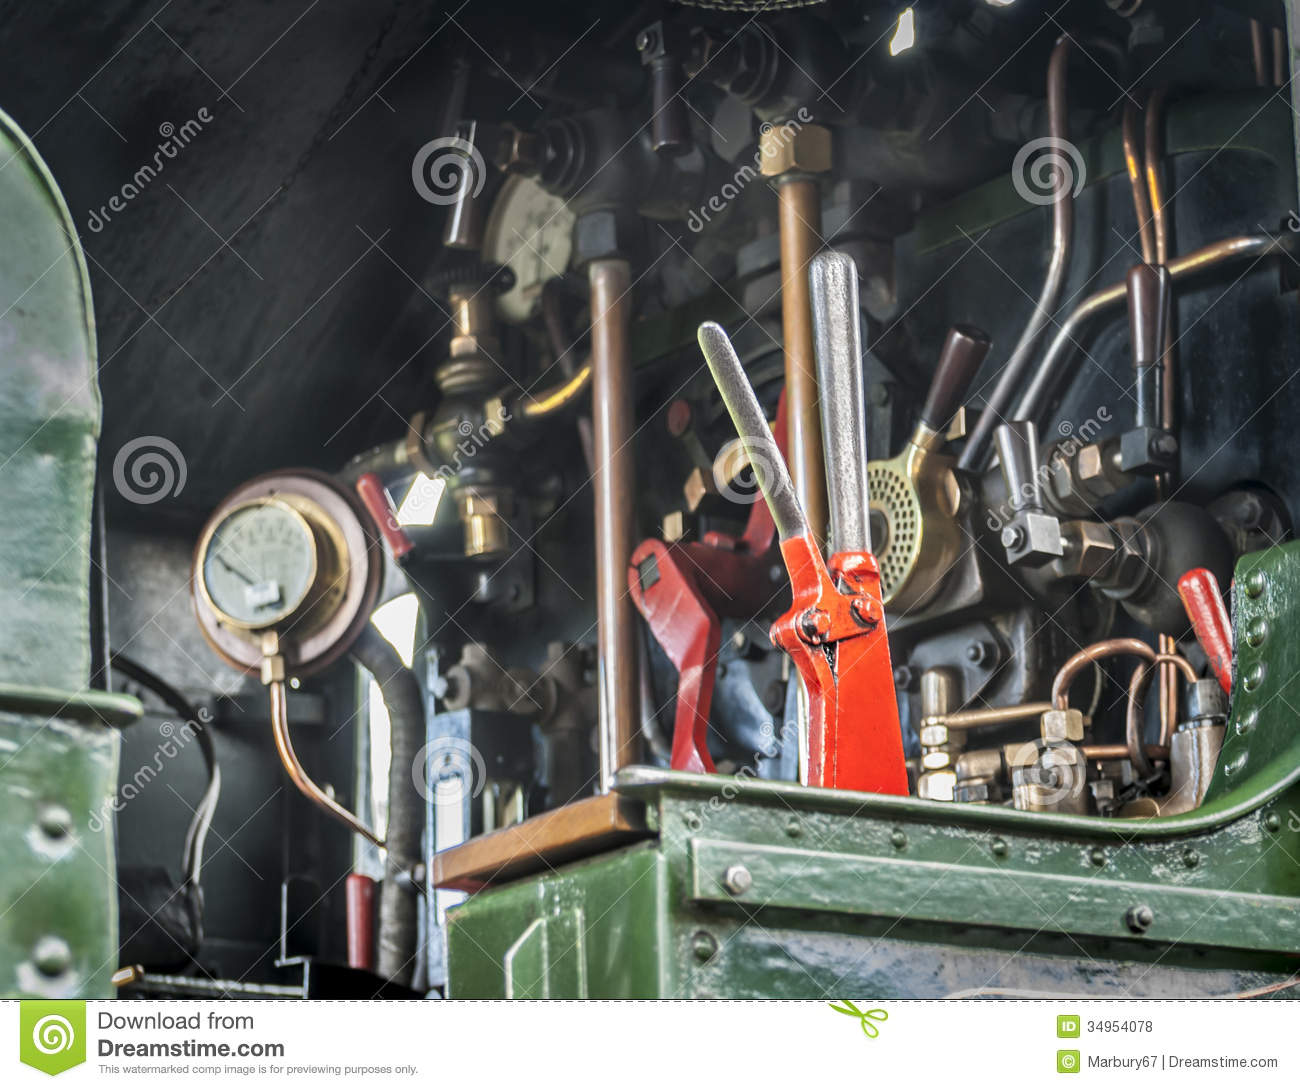 Train Control Lever : Steam train controls royalty free stock photos image